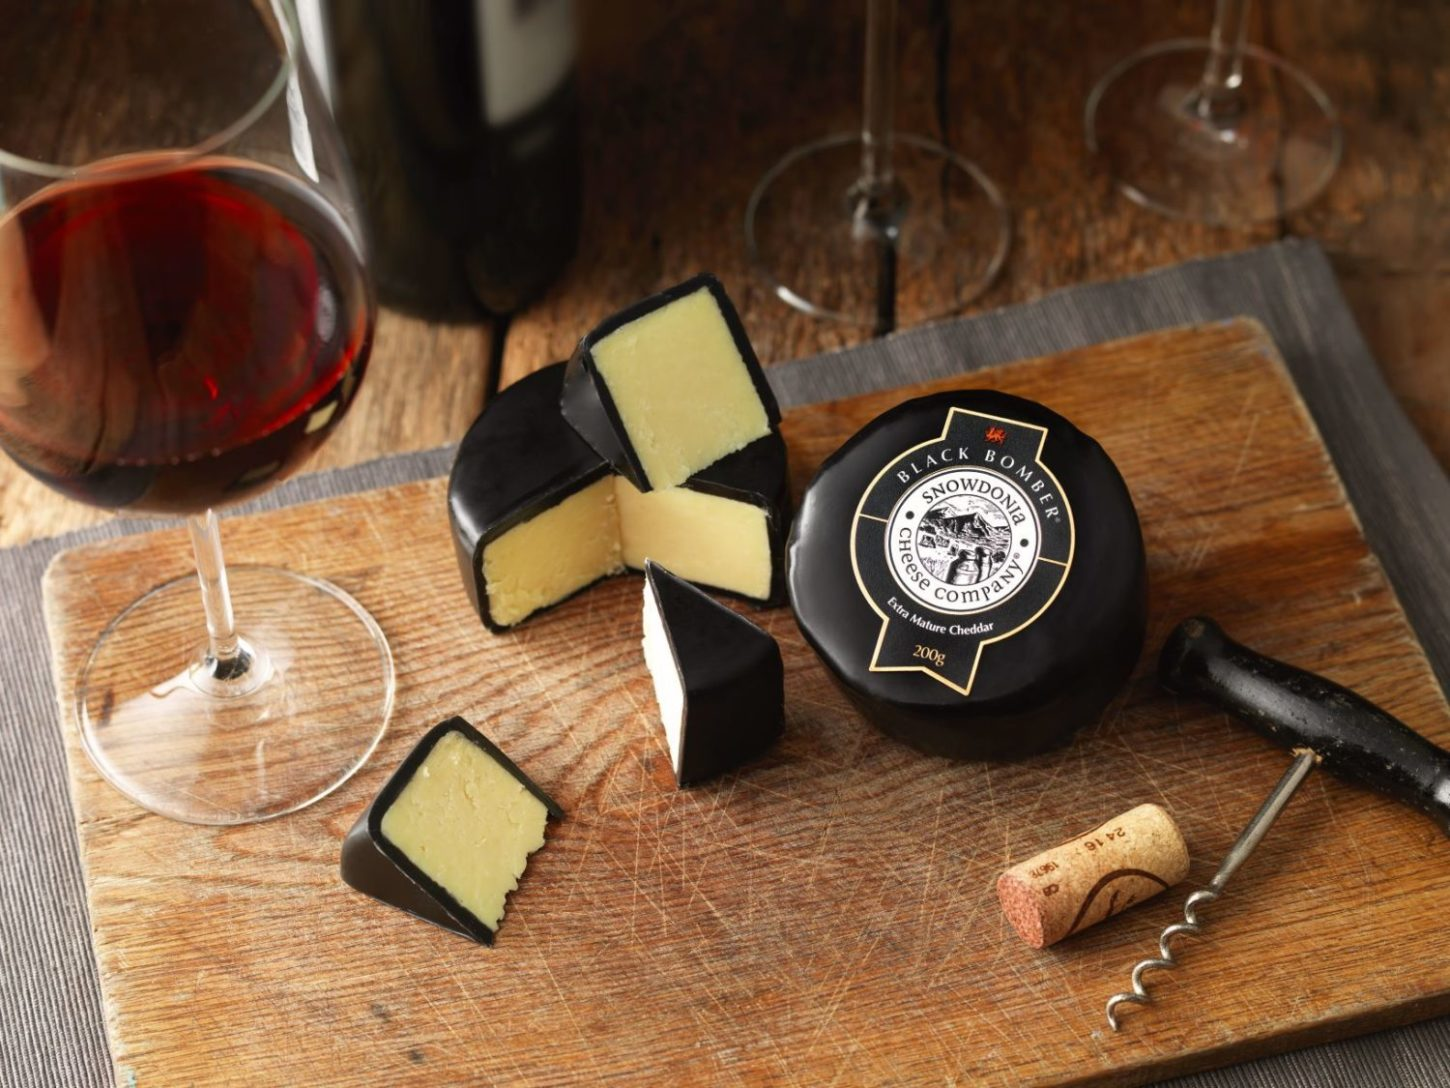 Black Bomber is voted Best British Cheese for a fifth time